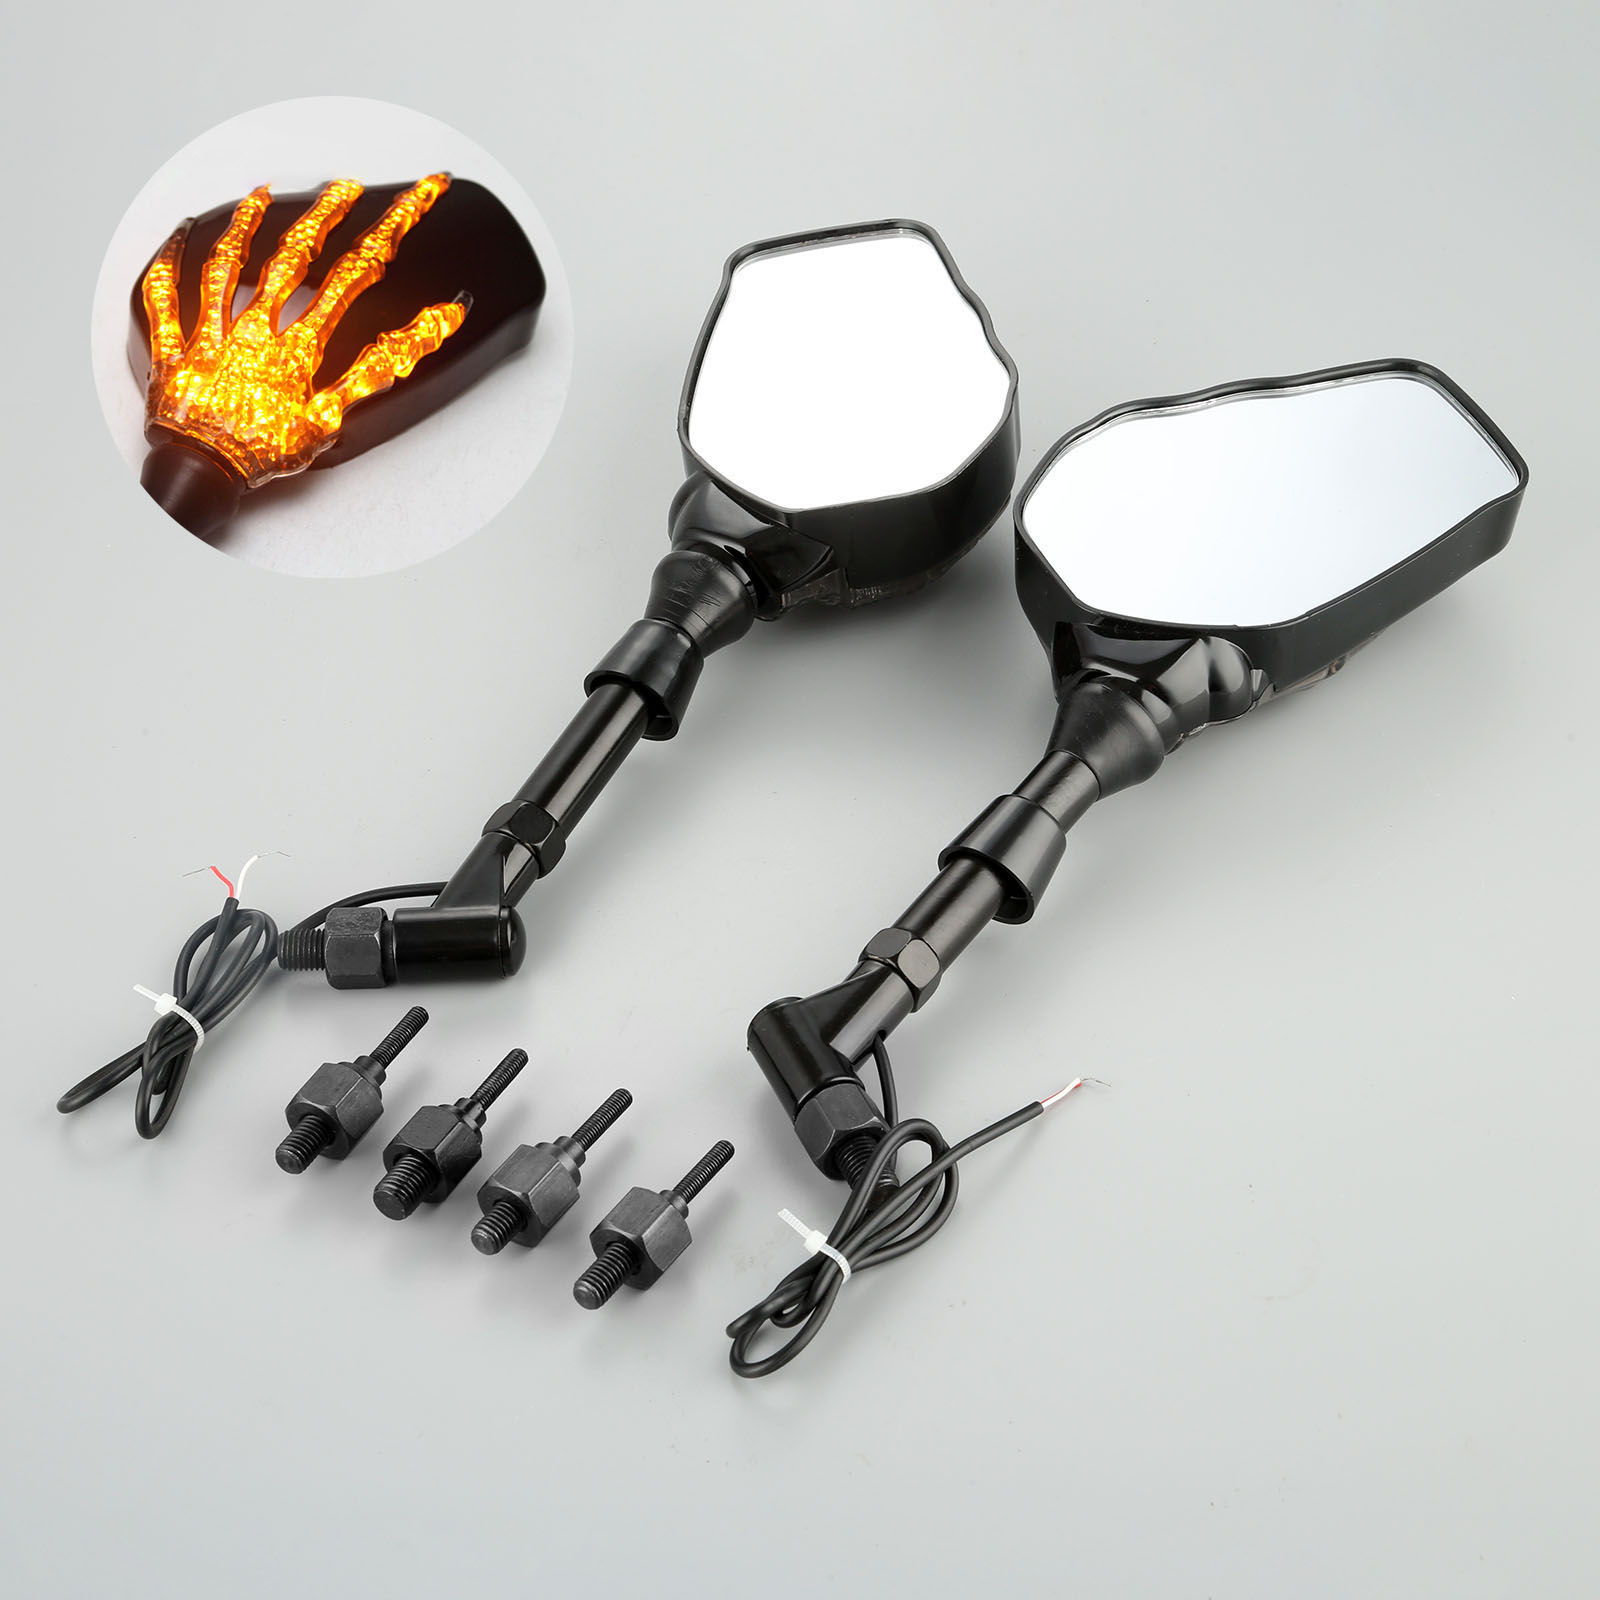 1Pair Motorcycle Handlebar Rearview Mirror LED Light With Skull Hand Pattern Ghost Claw 8mm 10mm Screws 10W 12V Light-in Side Mirrors & Accessories from Automobiles & Motorcycles